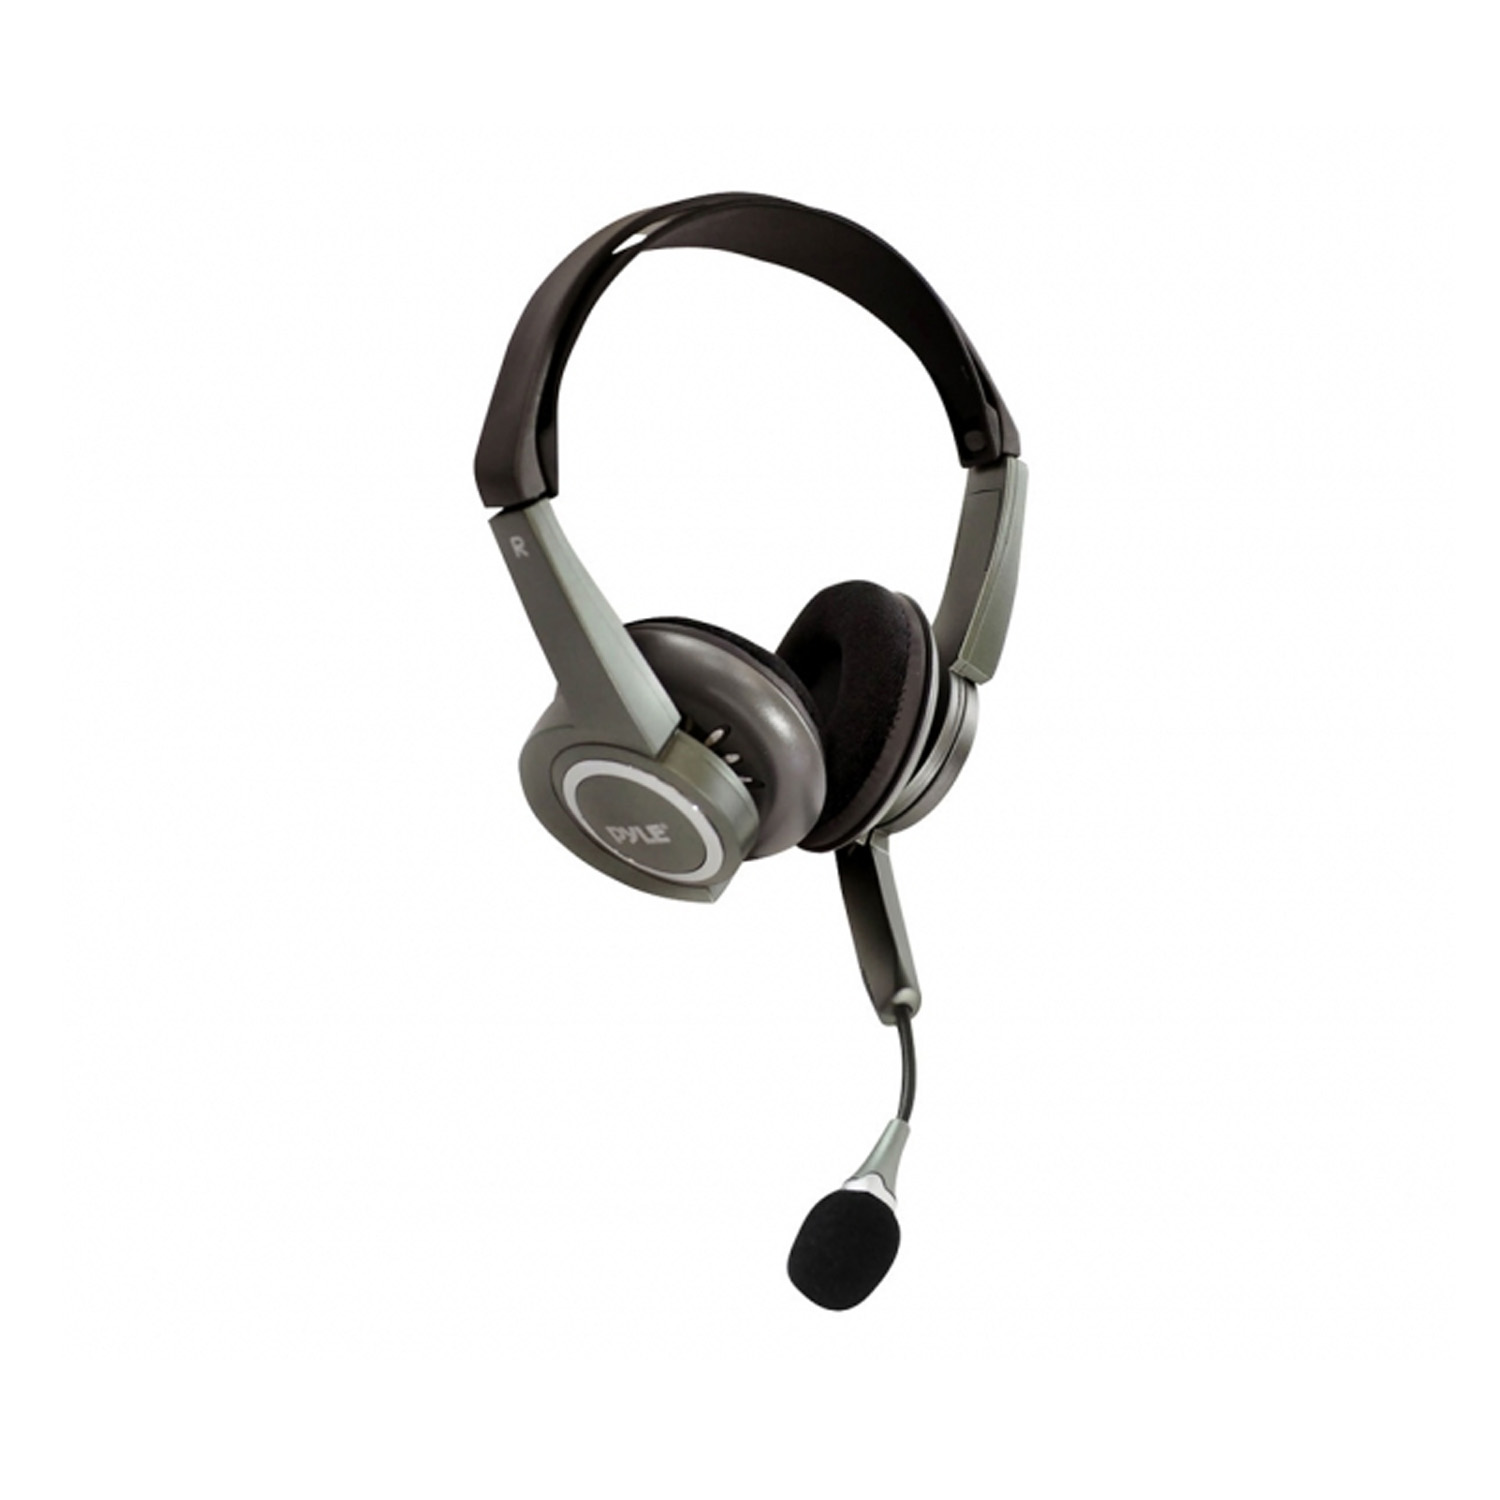 Pyle Extreme Bass Stereo PC Multimedia Headset/Microphone With Volume Control